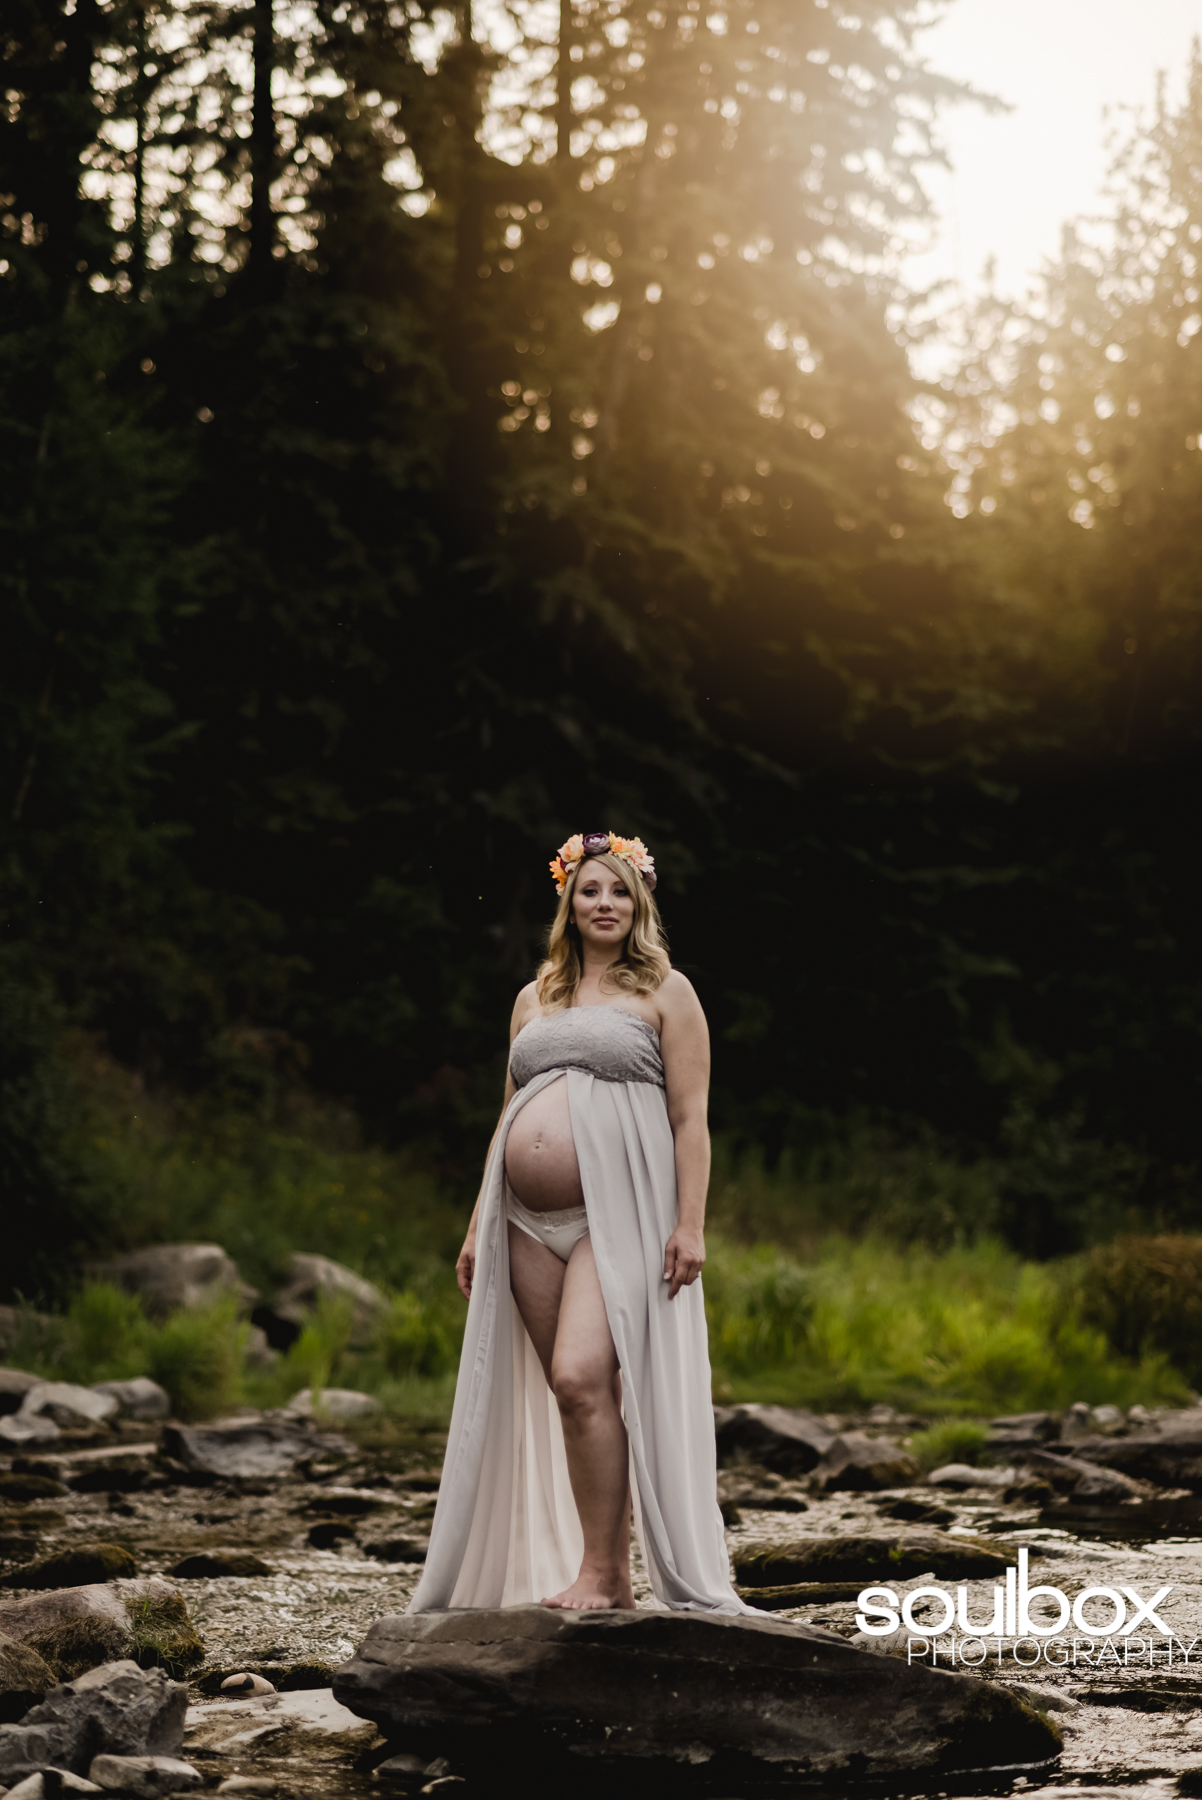 Soulbox Photography Maternity Photography Red Deer